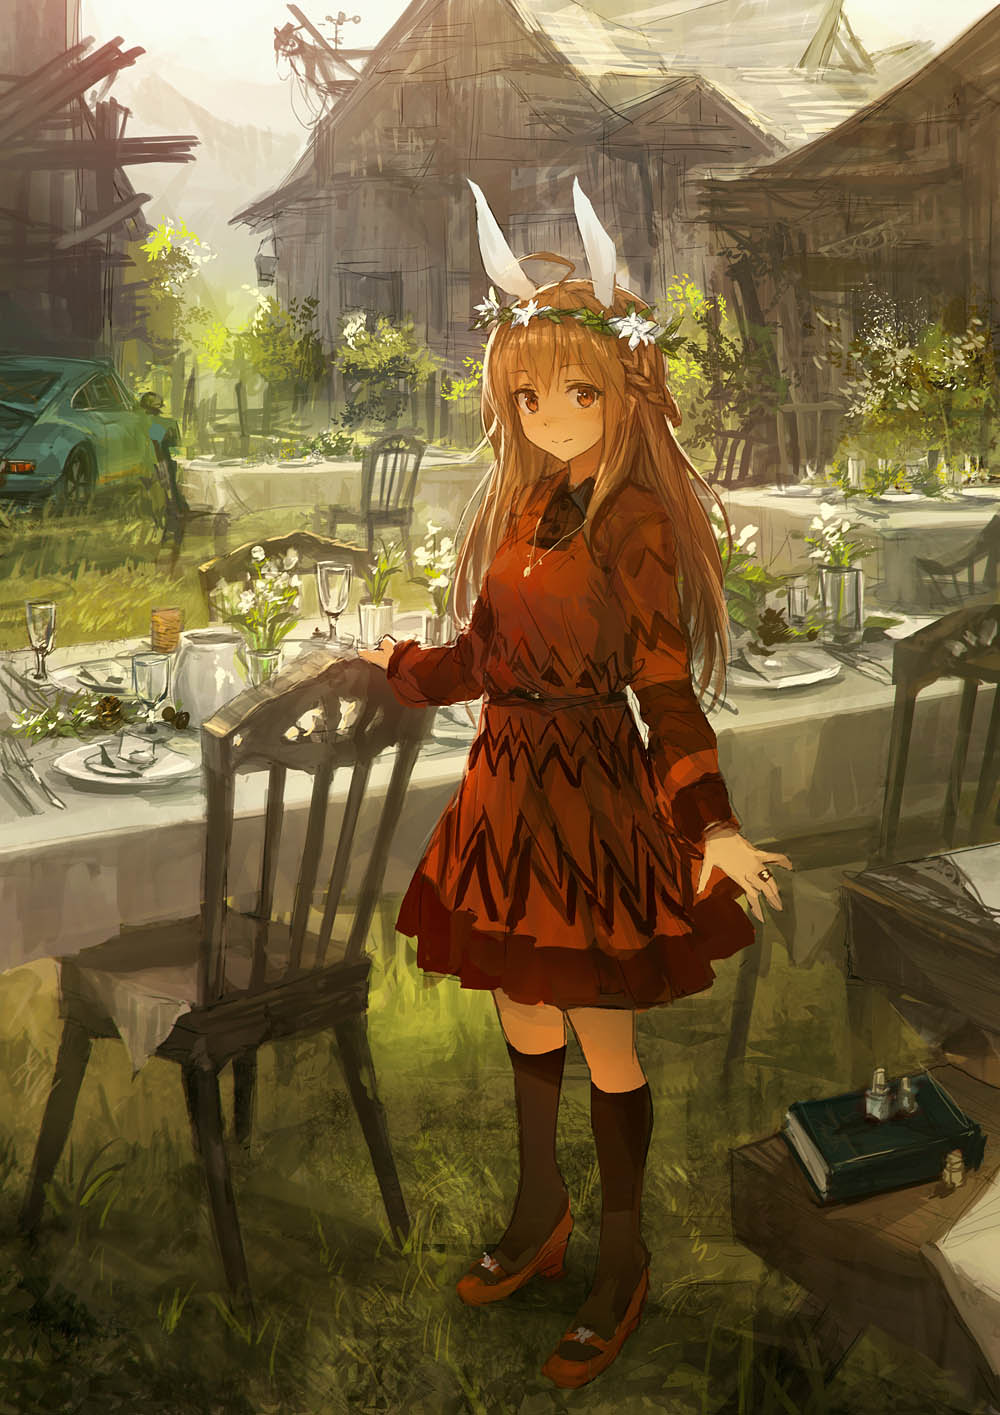 animal_ears bunny_ears dress heels lm7